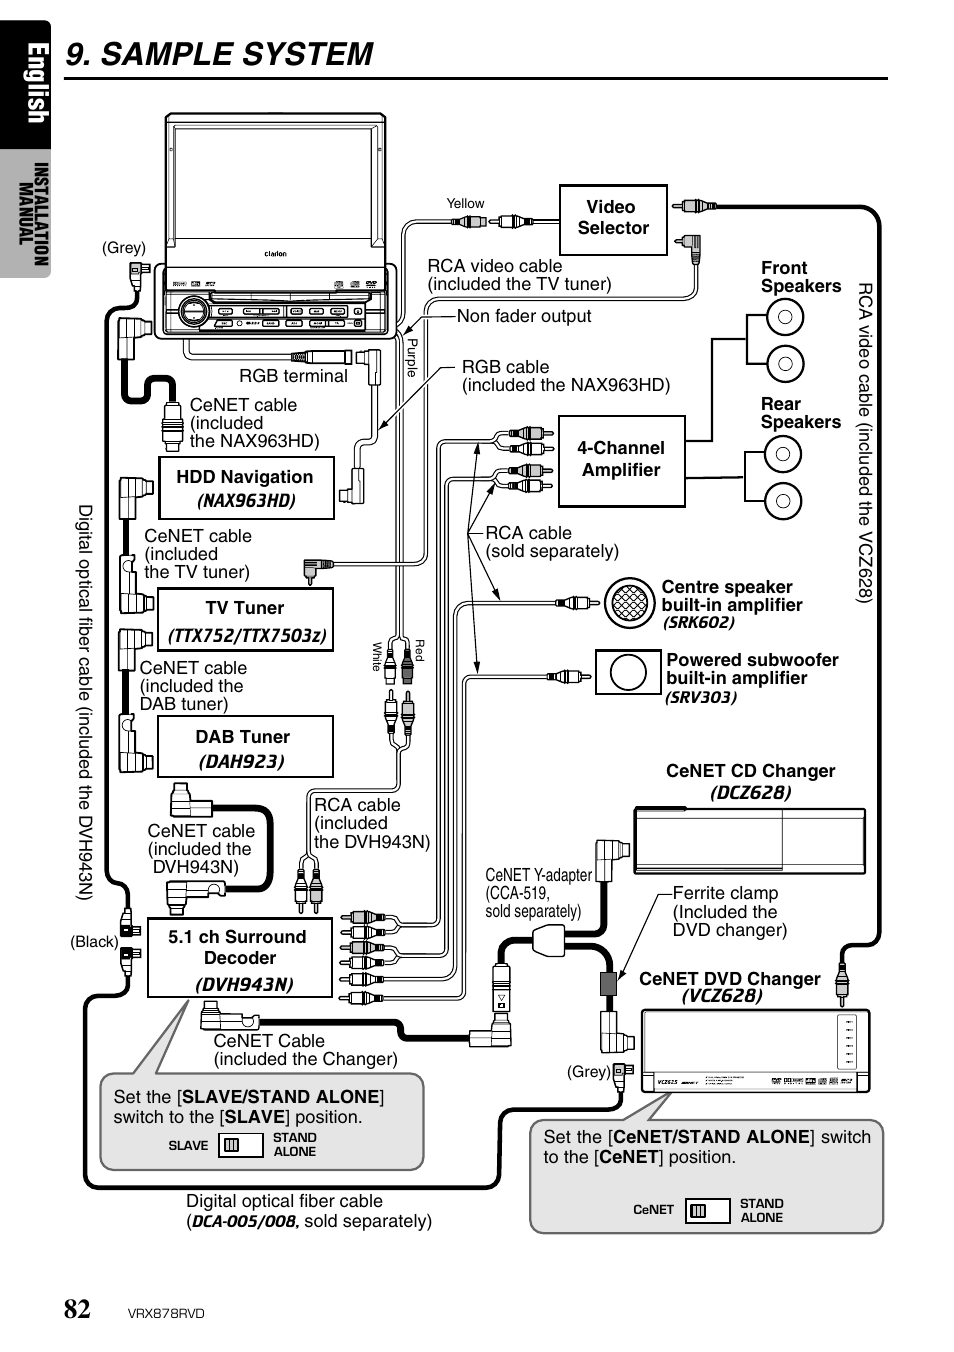 Clarion Wiring Diagram from schematron.org